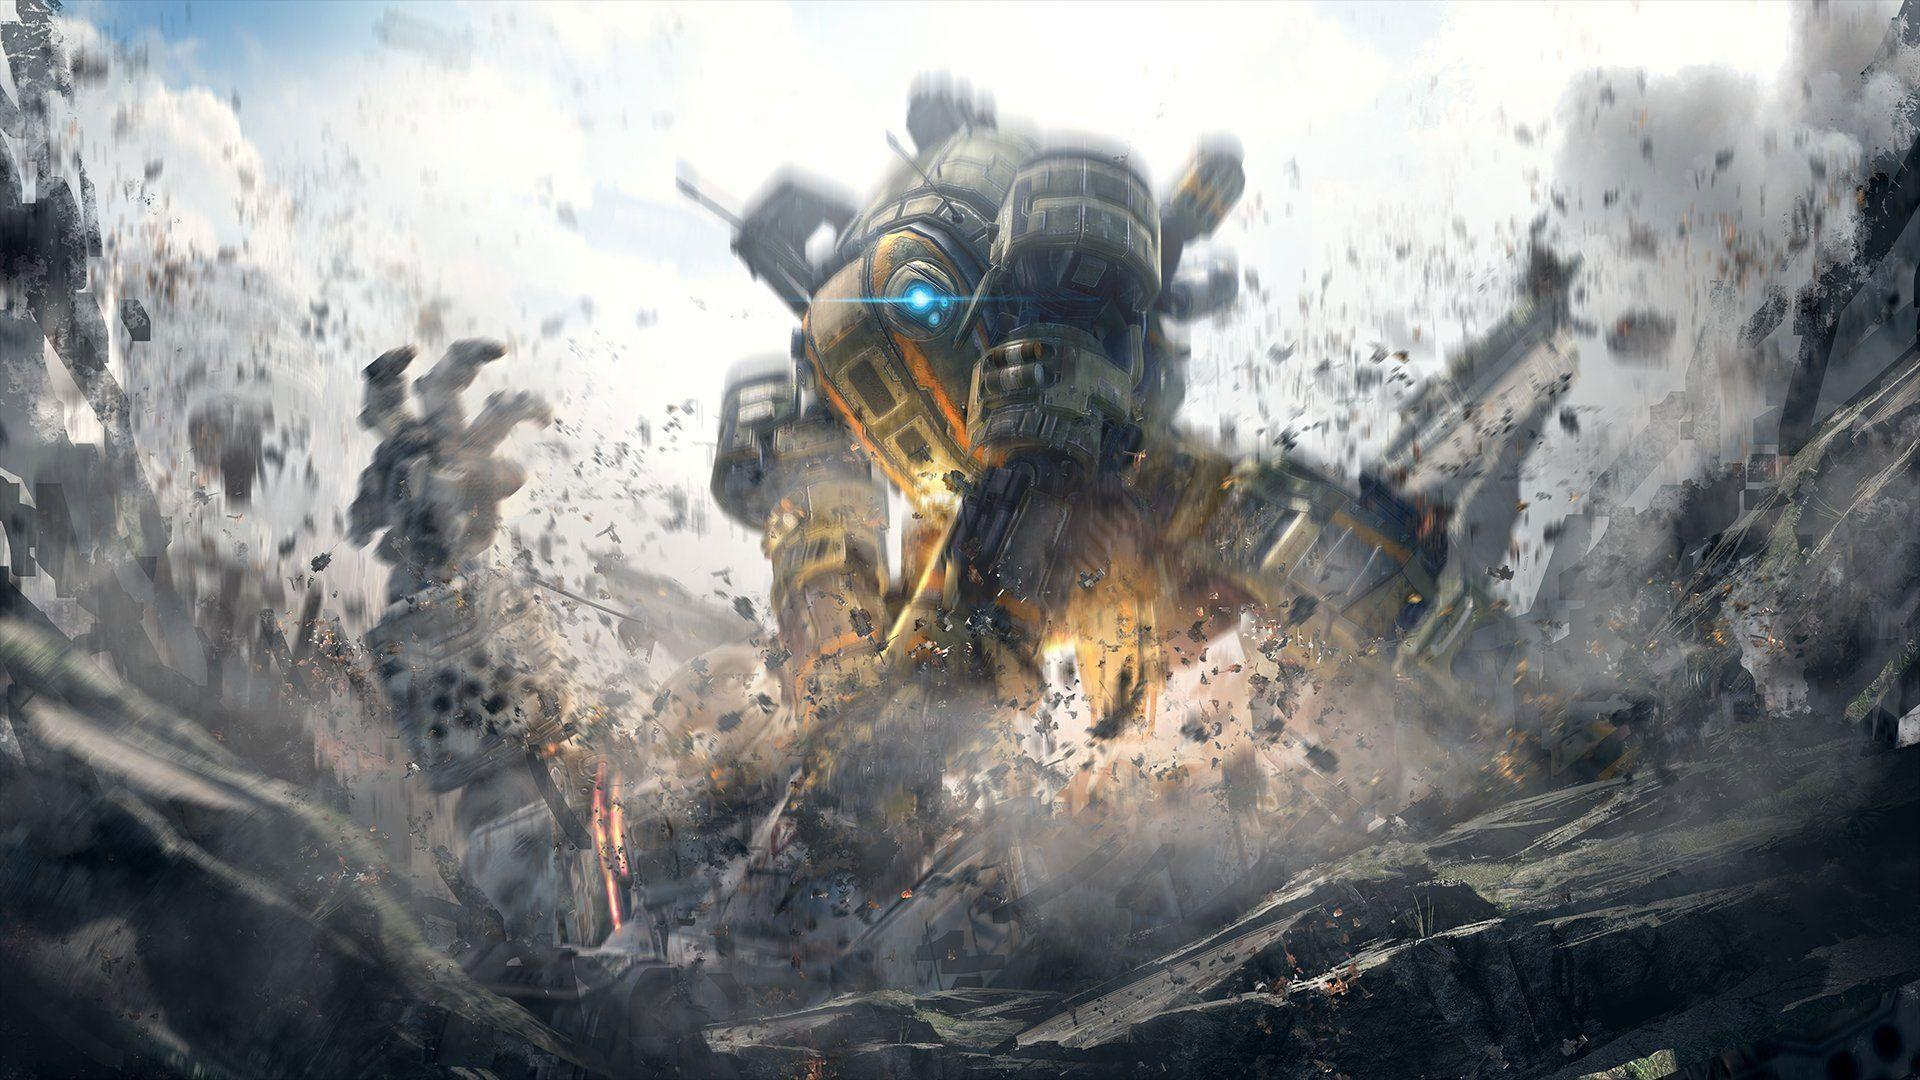 Titanfall 2 Wallpapers in Ultra HD